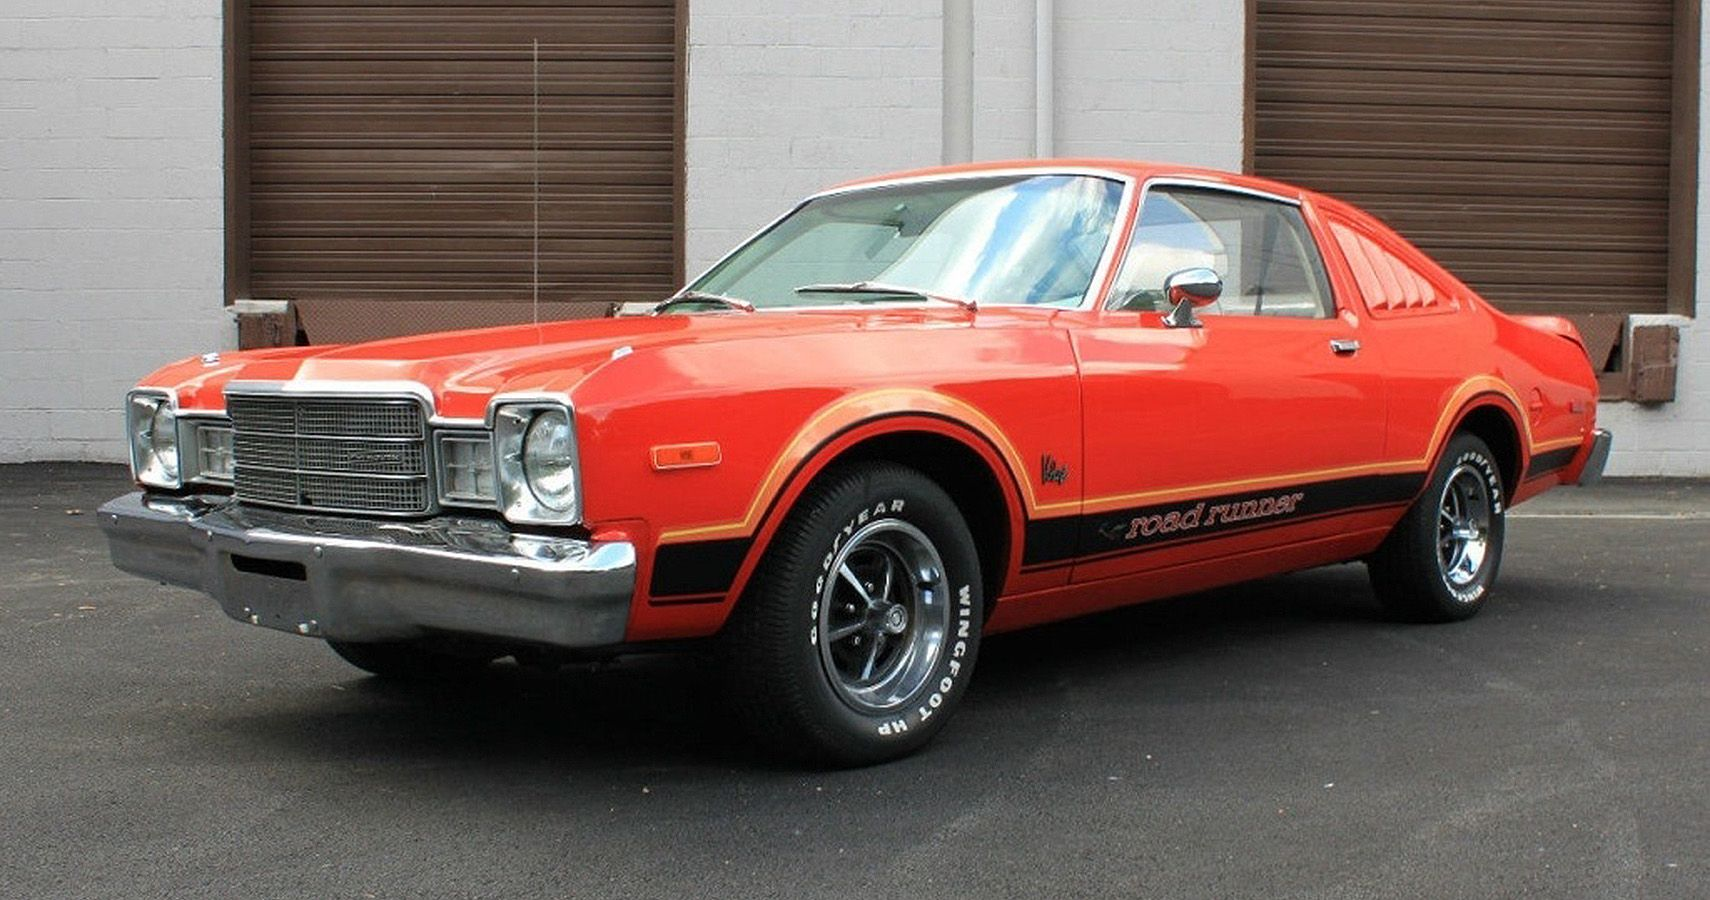 These Muscle Cars Were Terrible... But They Sold Like Hotcakes